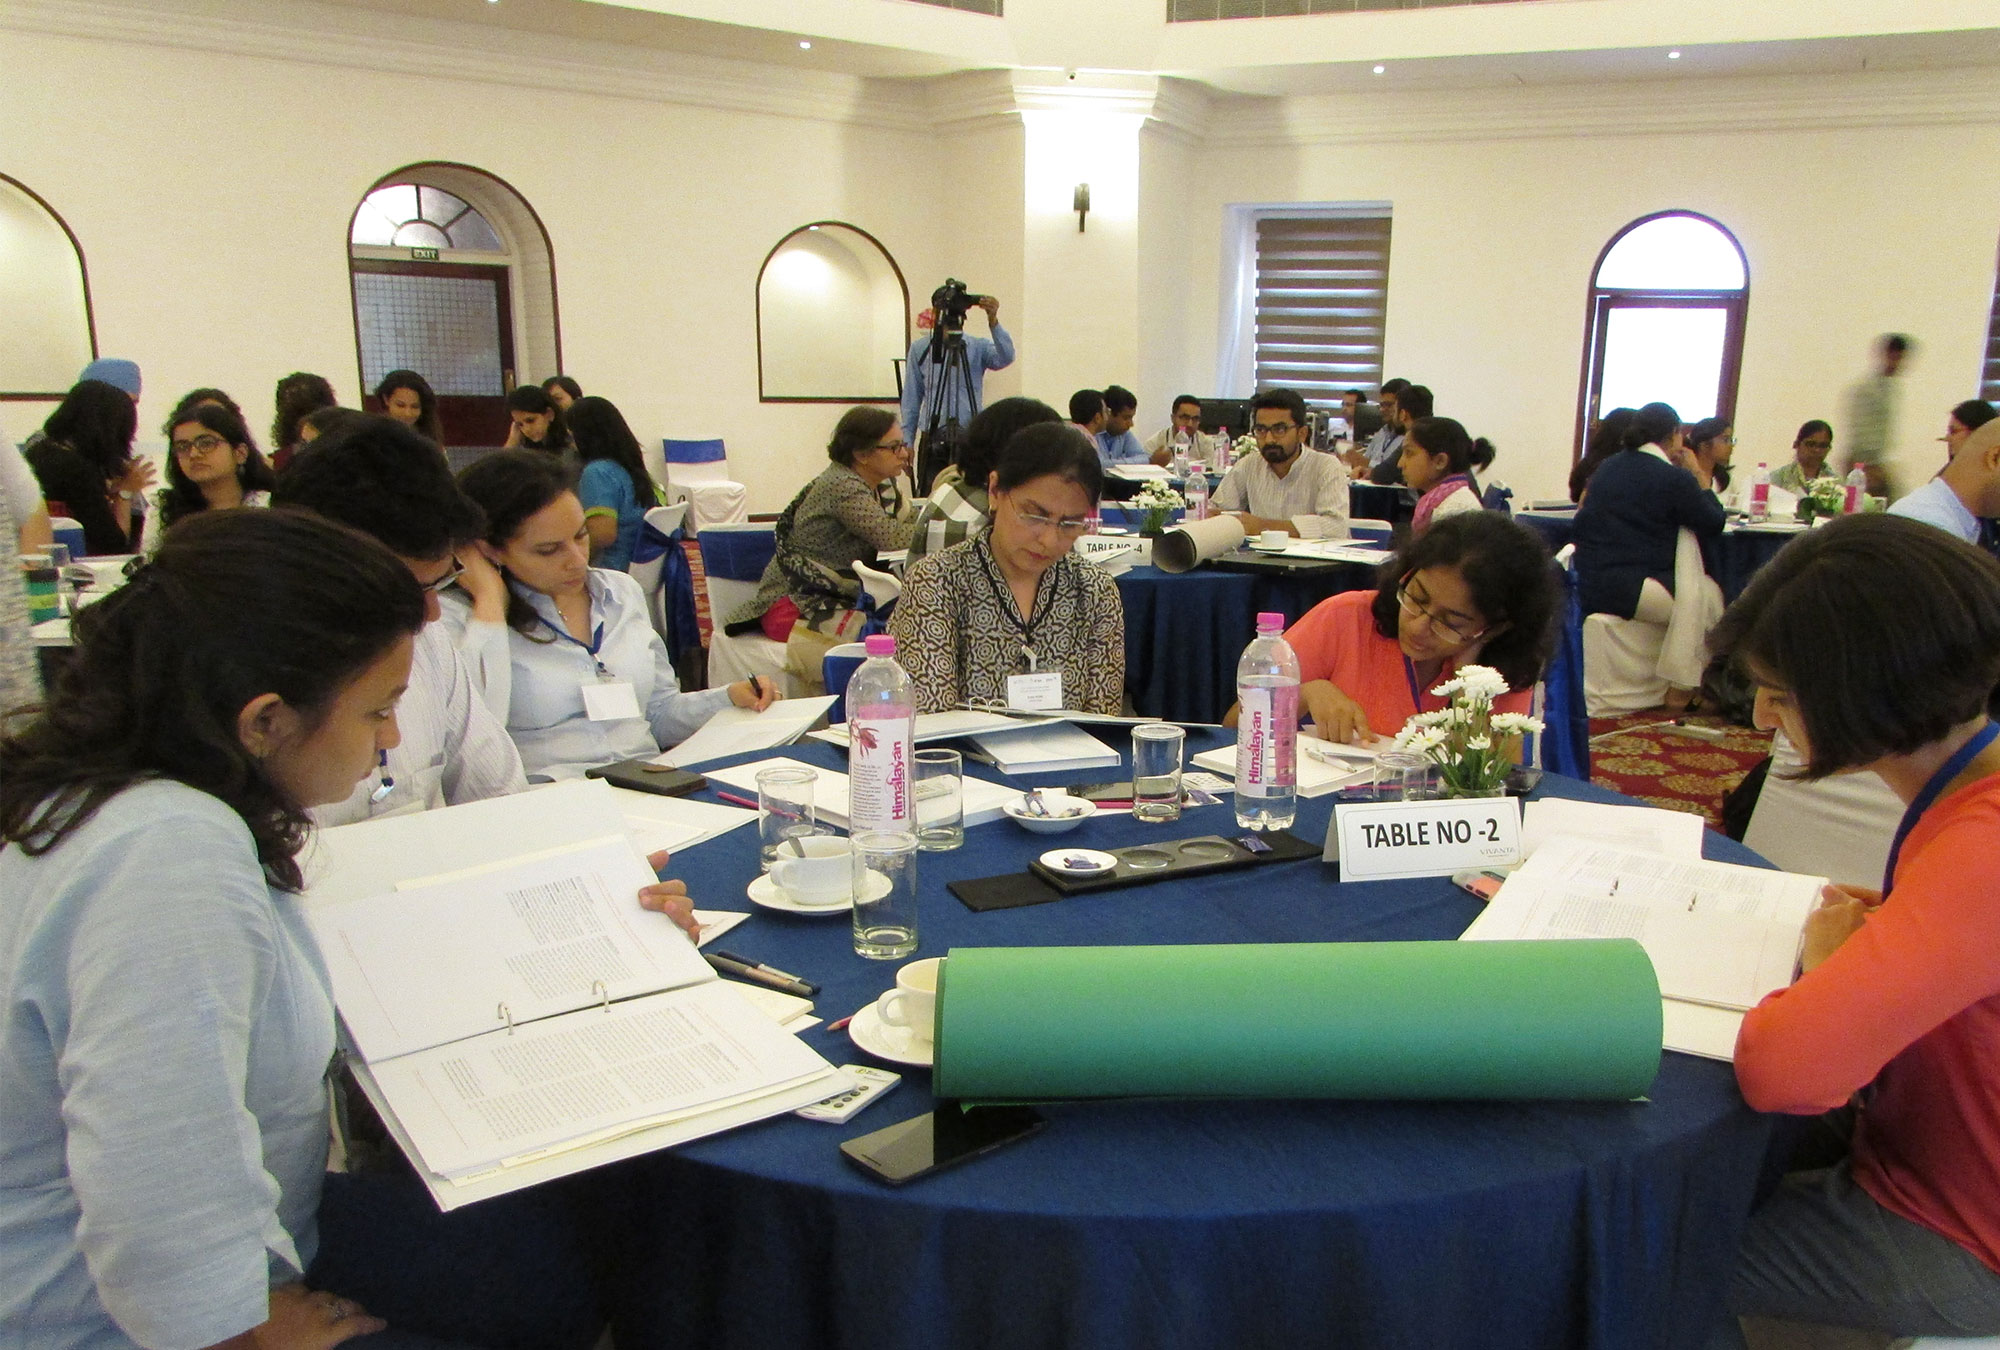 Participants at training sit around round table